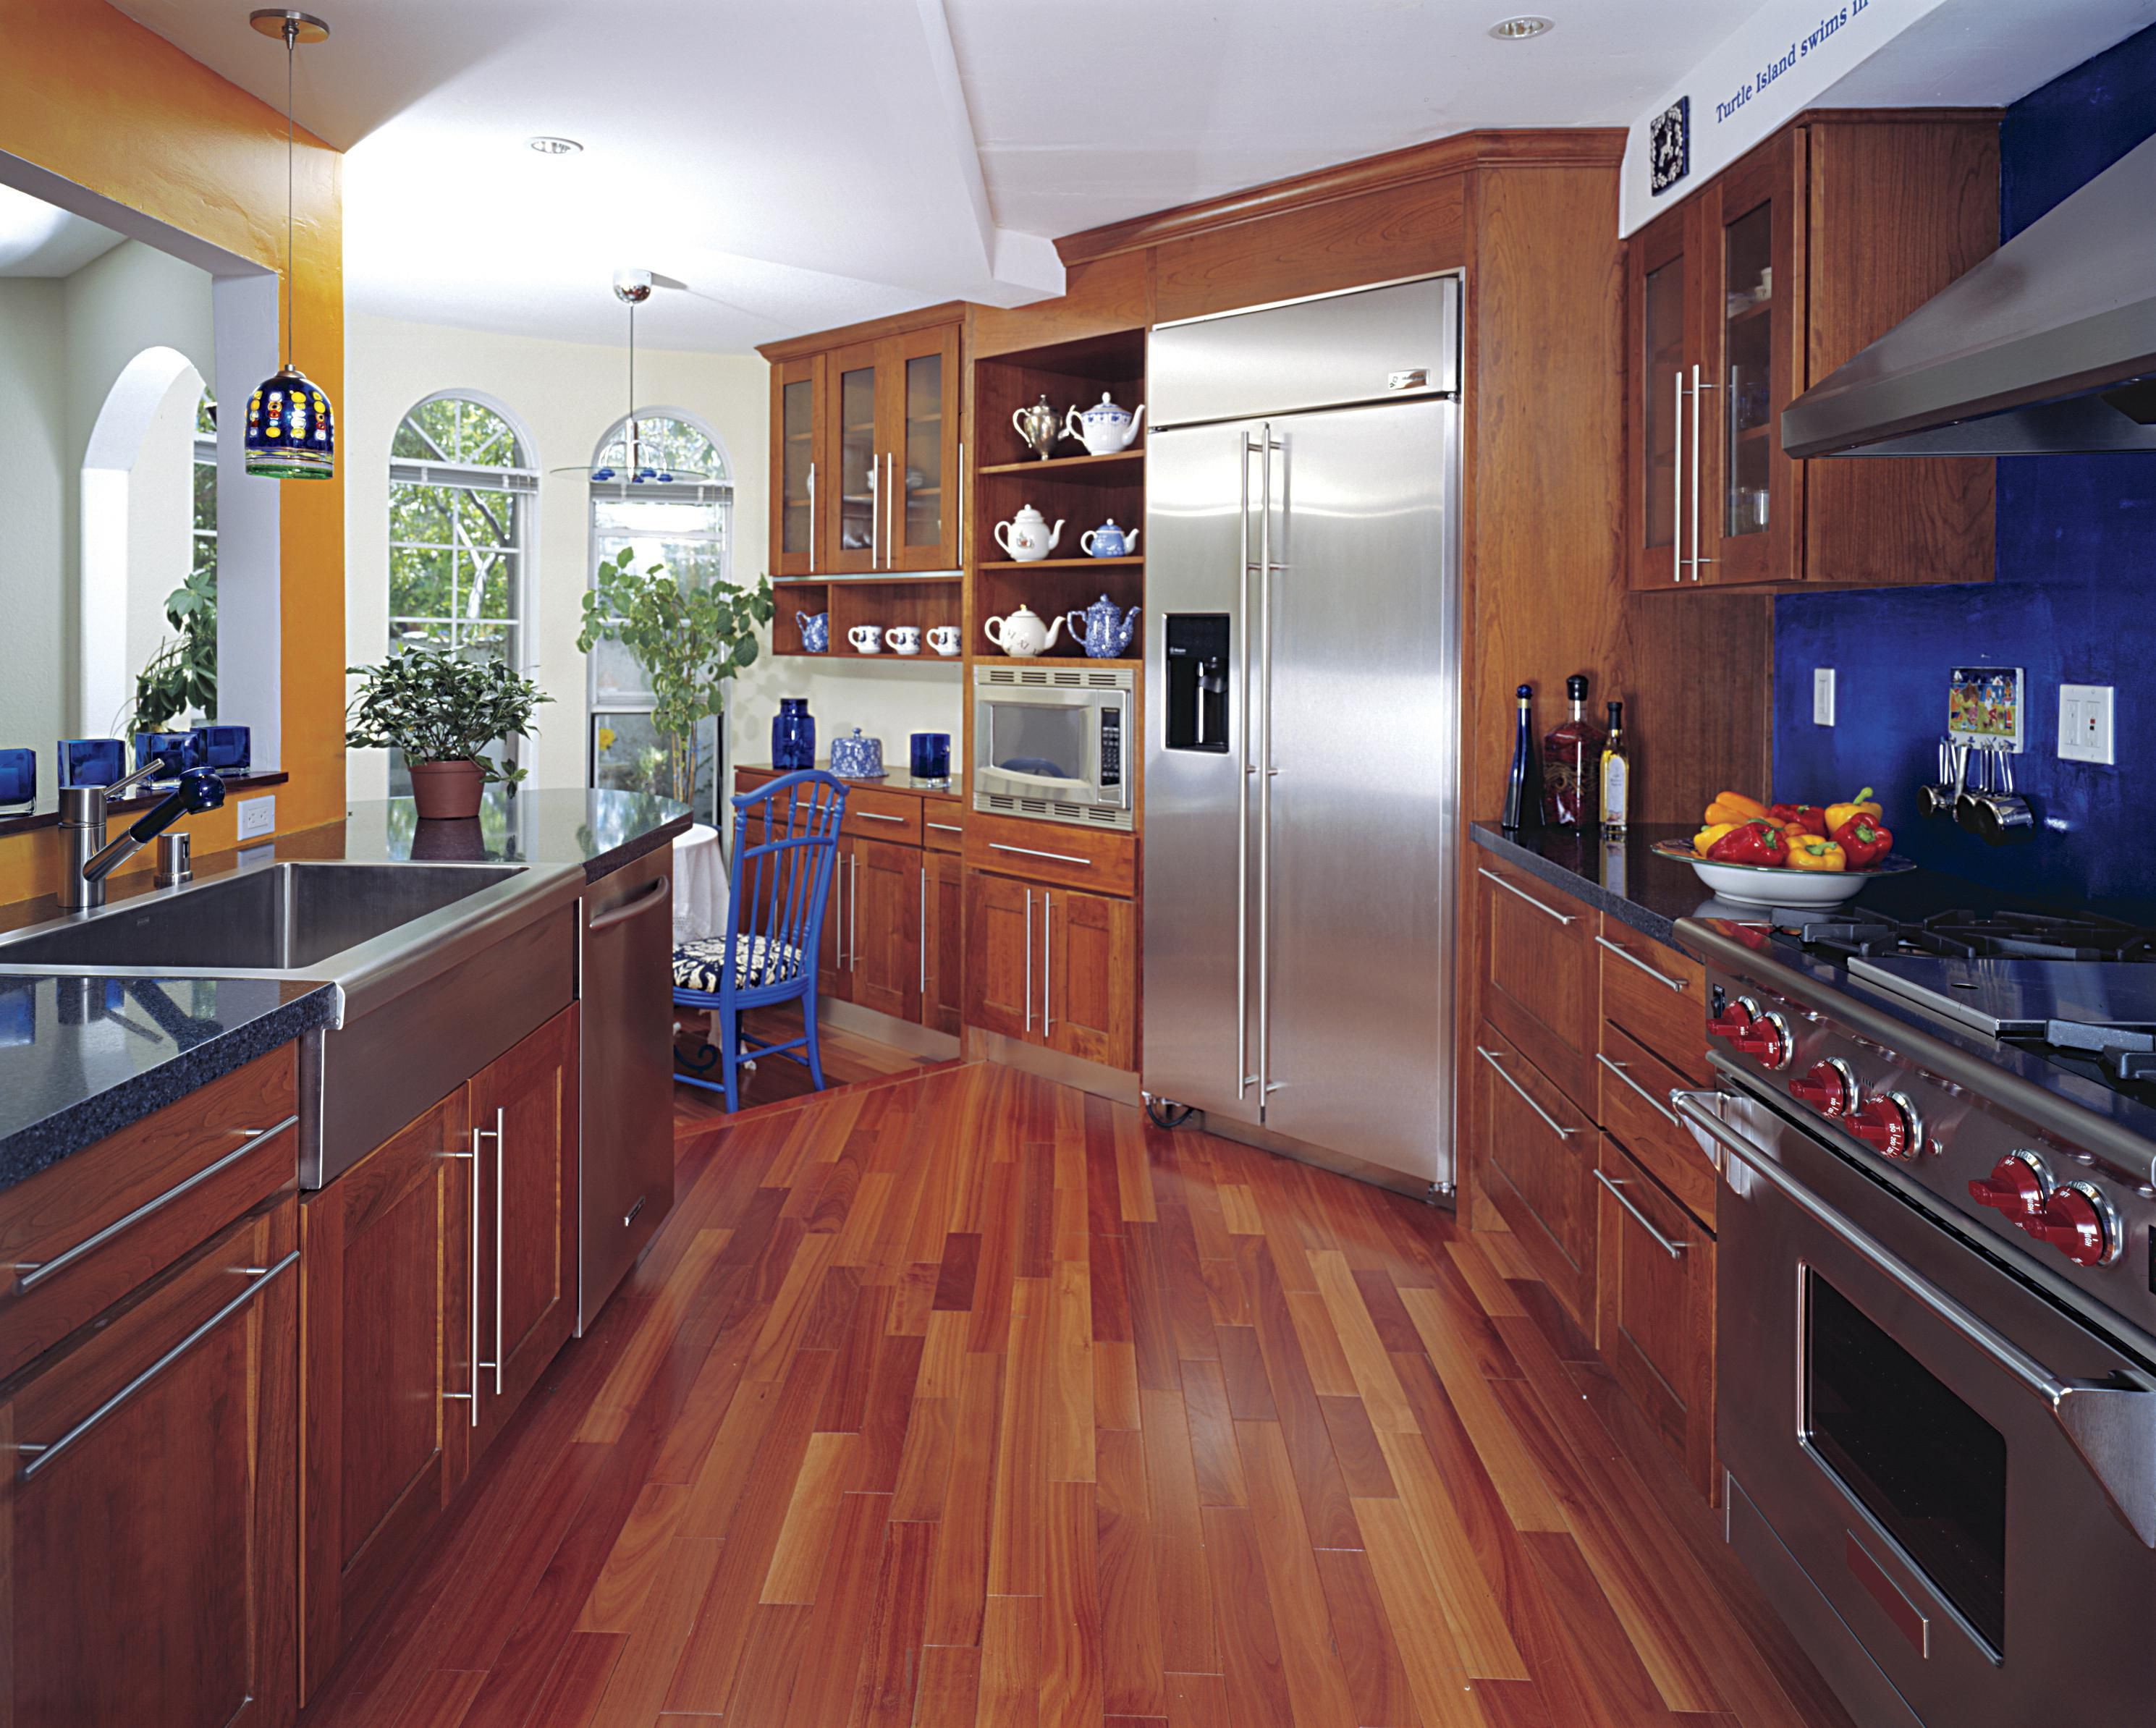 hardwood flooring nails or staples of hardwood floor in a kitchen is this allowed within 186828472 56a49f3a5f9b58b7d0d7e142